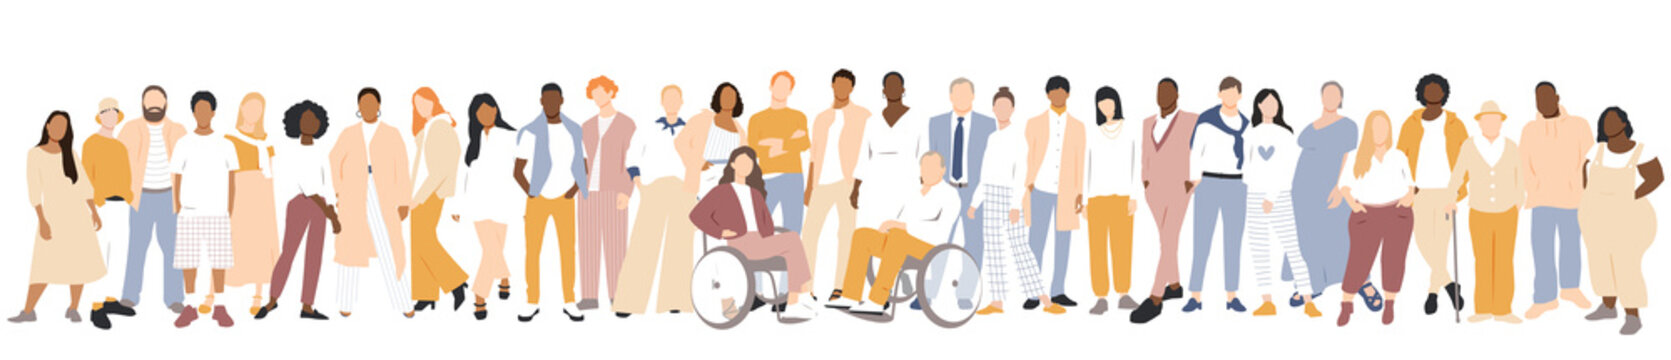 People of different ethnicities stand side by side together. Flat vector illustration.